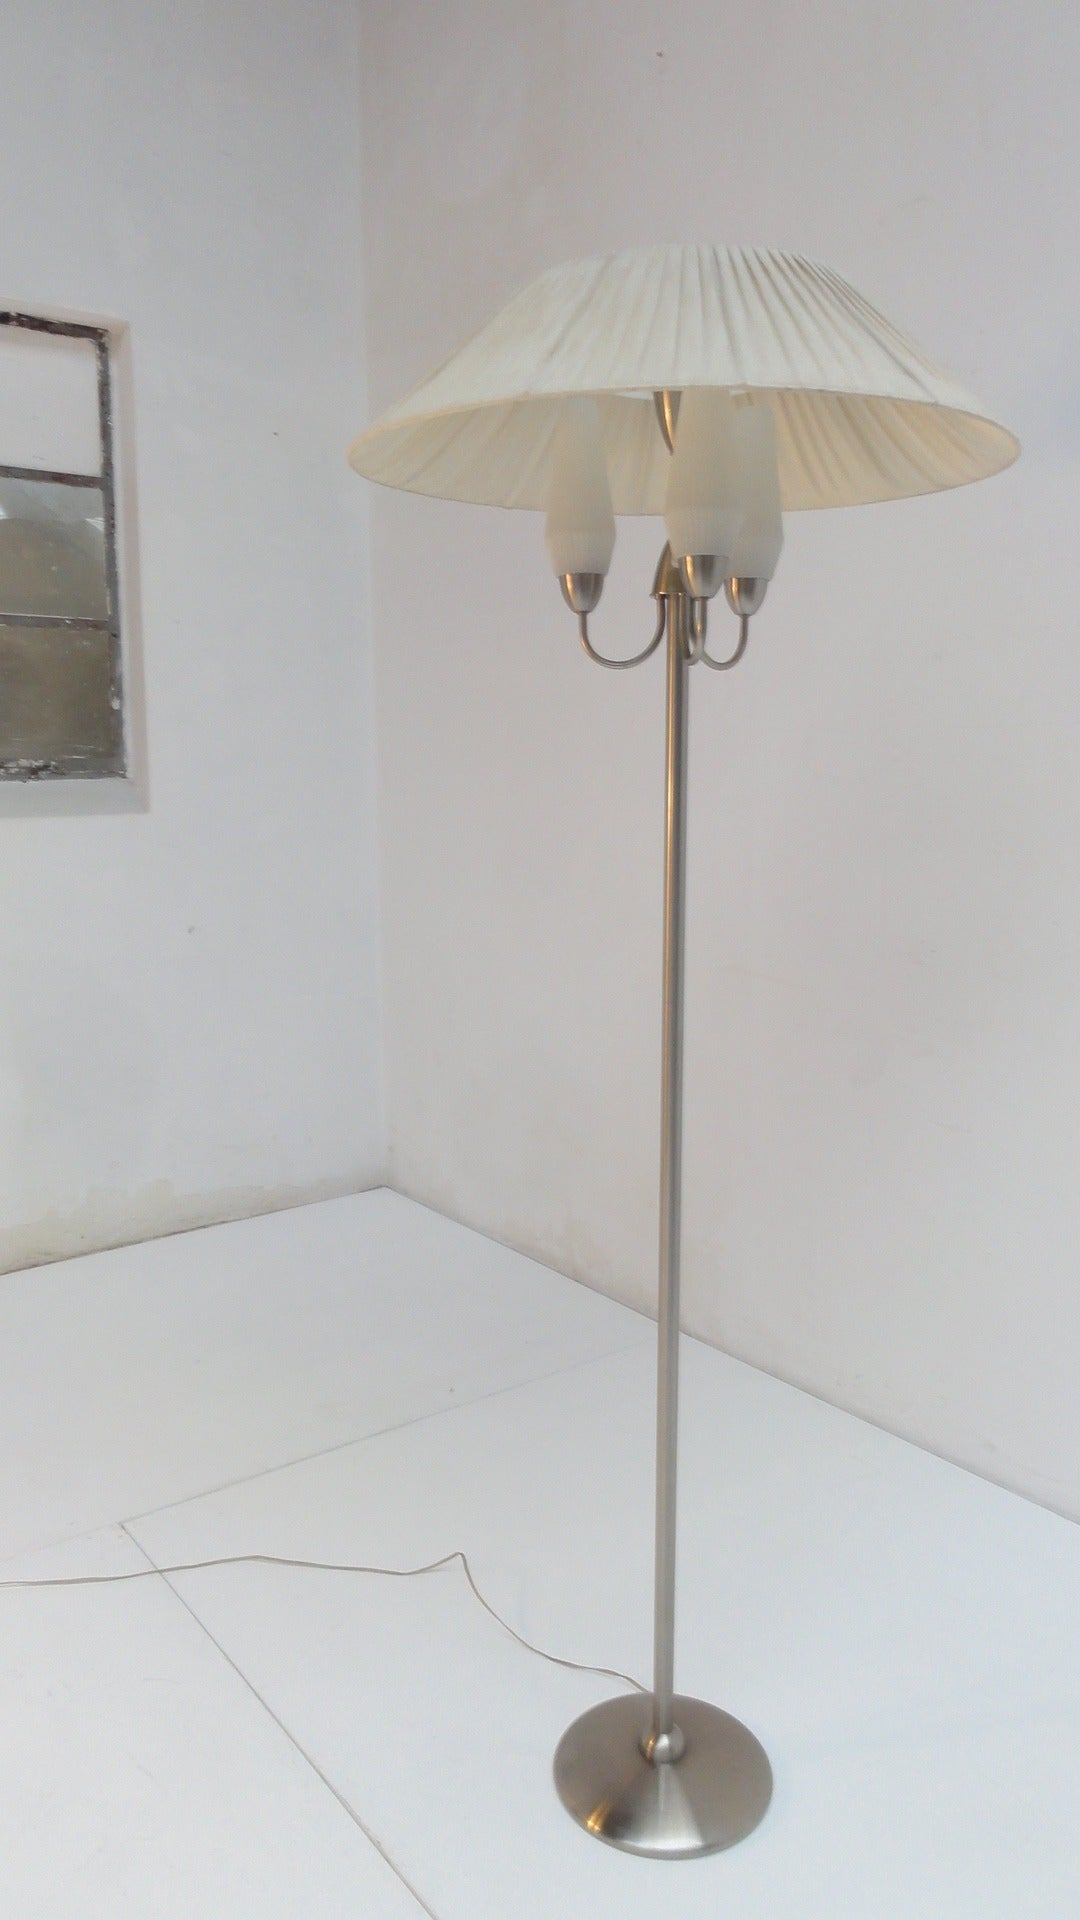 Modernist bauhaus floor lamp by wh gispen the netherlands at 1stdibs modernist bauhaus floor lamp by wh gispen the netherlands for sale 1 aloadofball Image collections